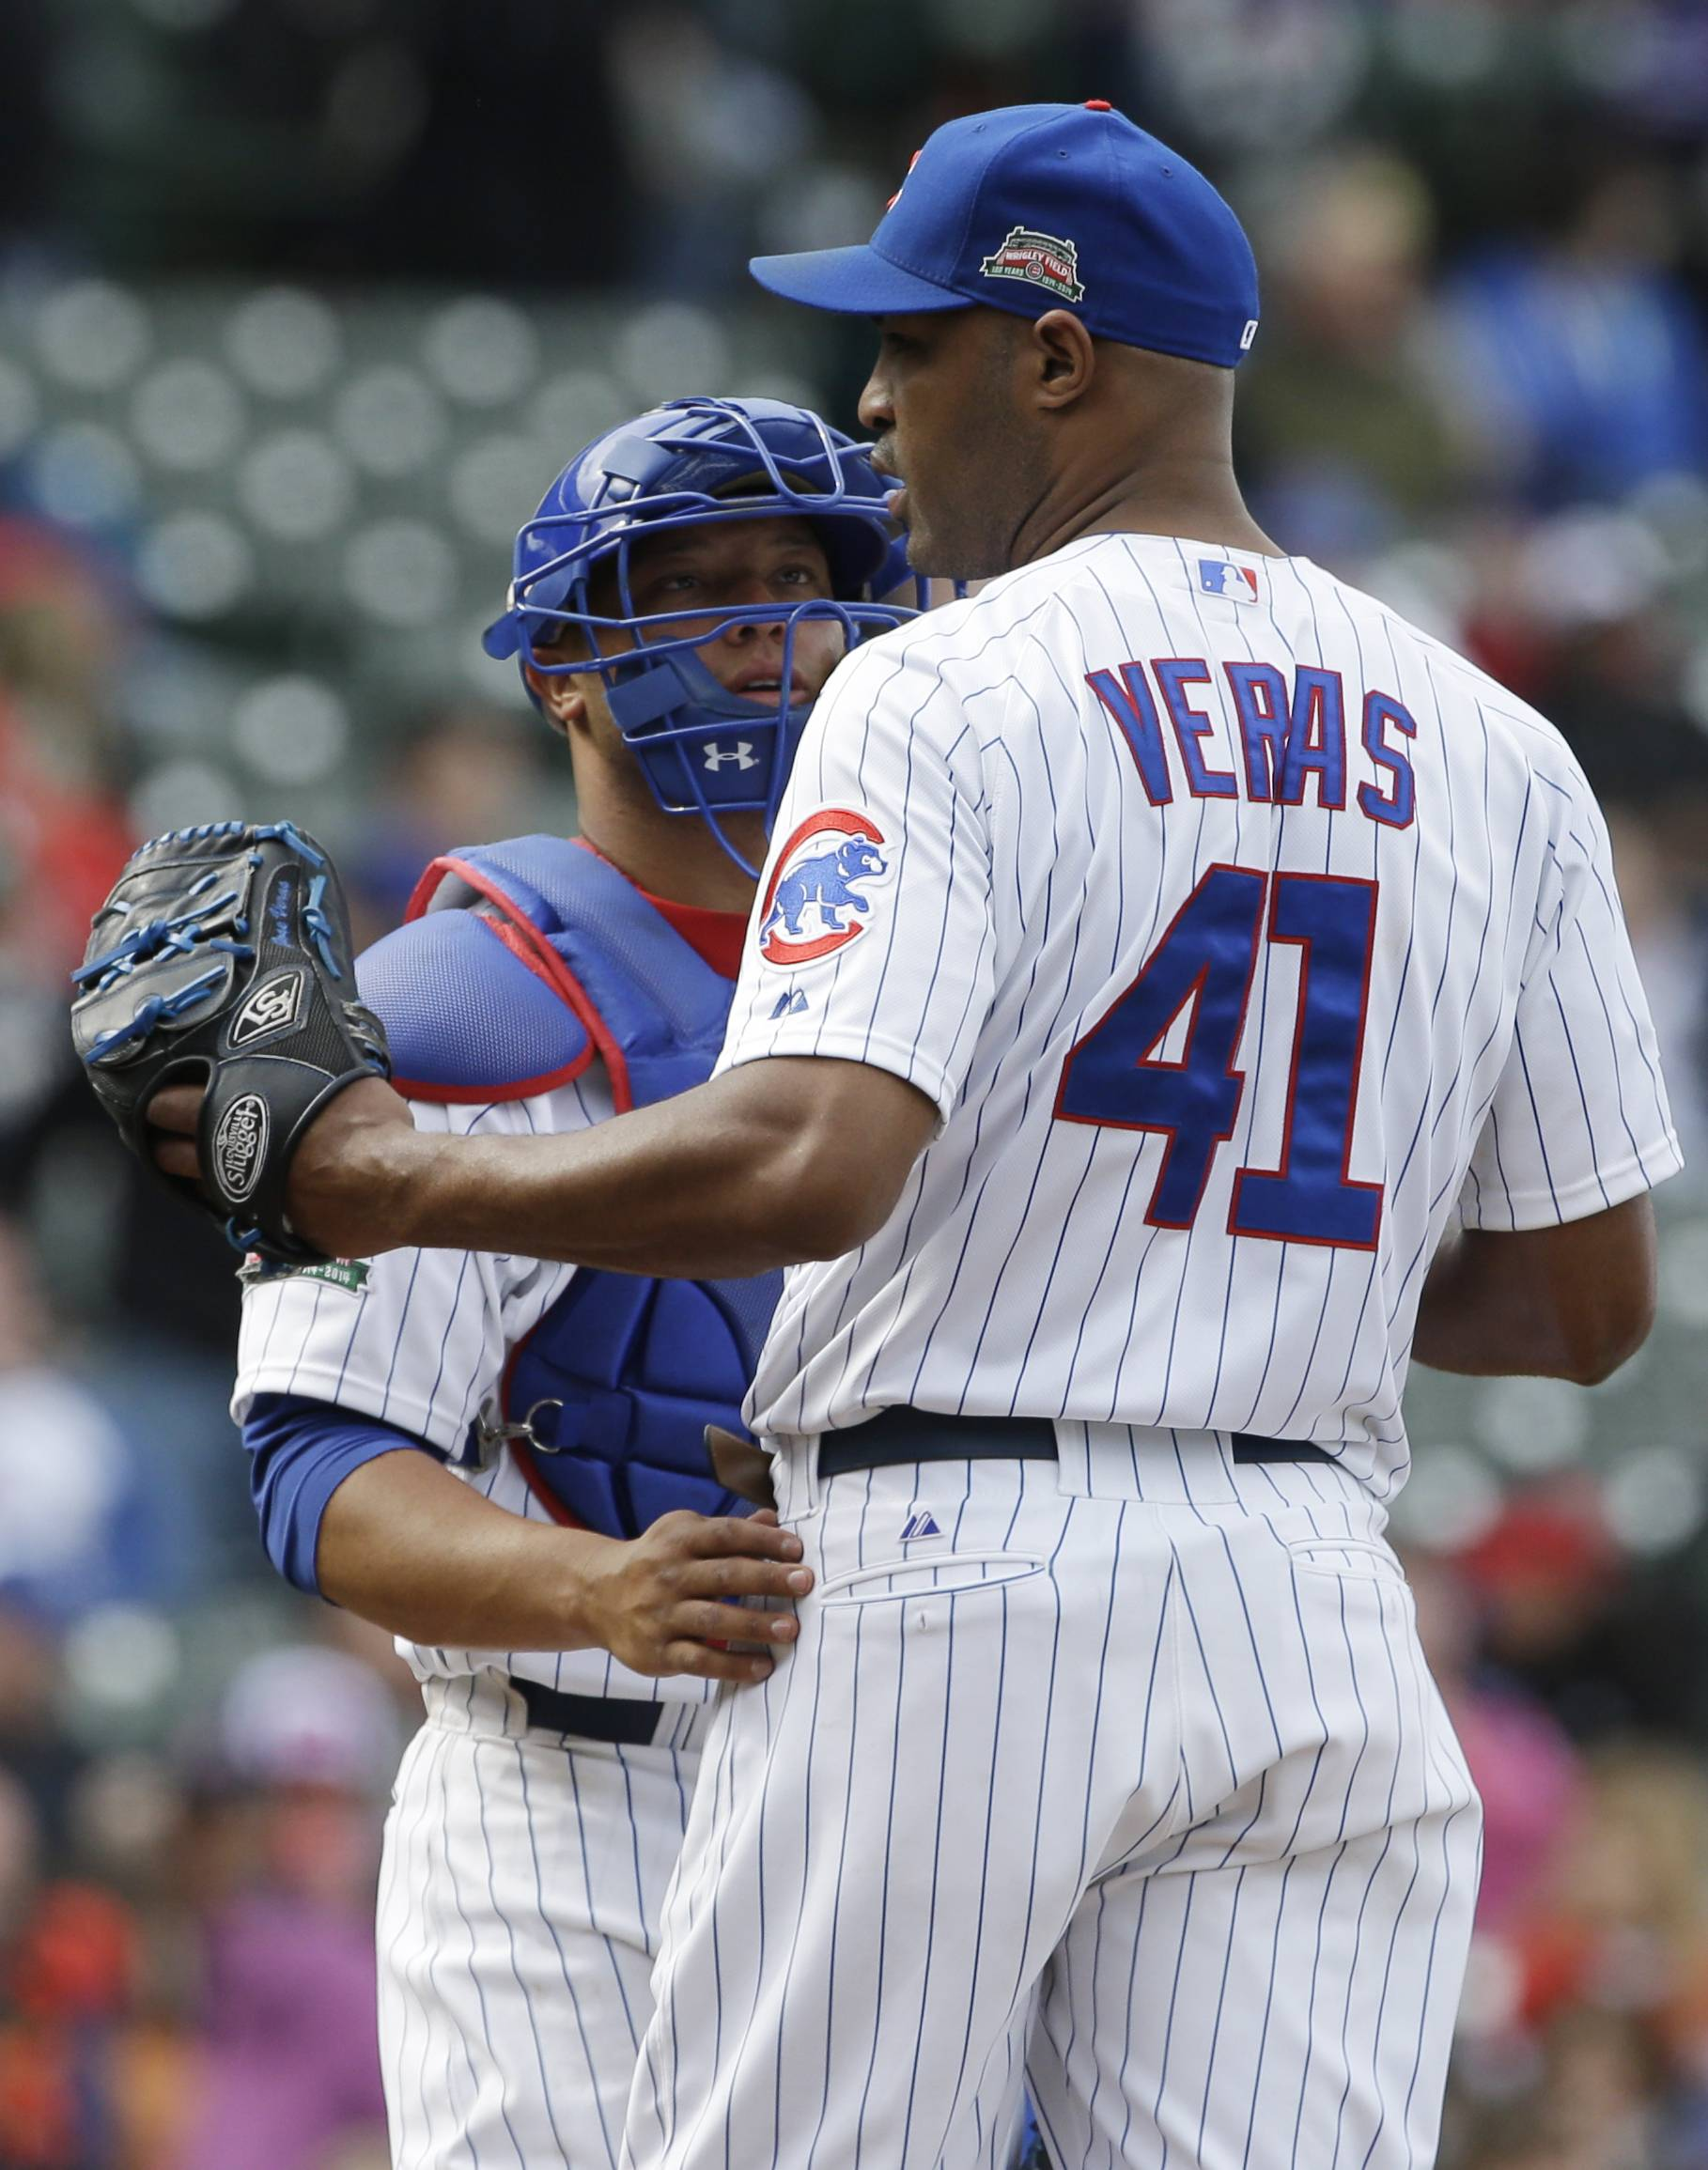 The Cubs on Tuesday cut relief pitcher Jose Veras, who was 0-1 with an 8.10 ERA and a high WHIP of 1.73.